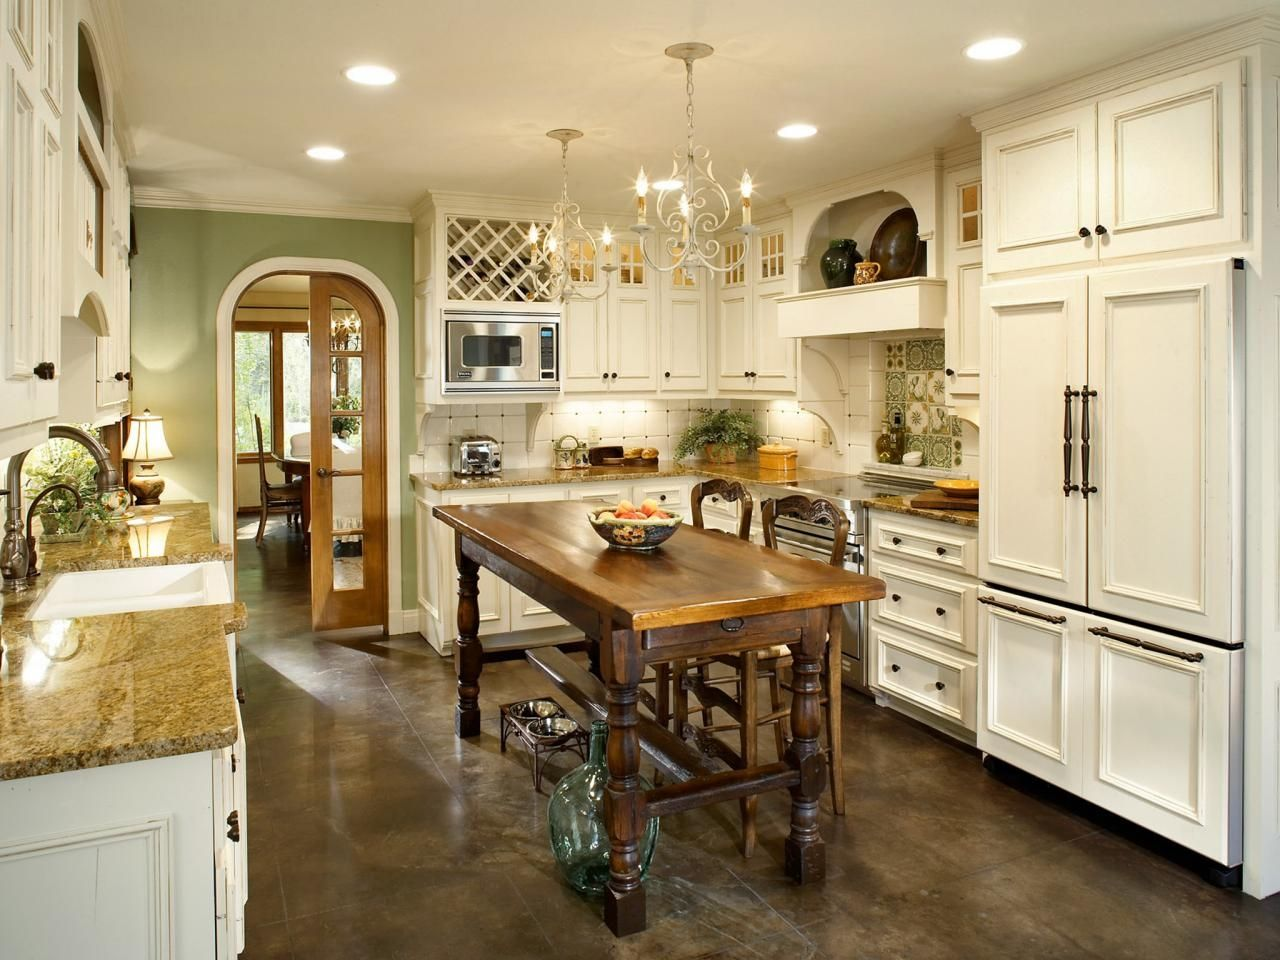 Kitchen Room : White French Country Kitchen Cabinets White Country ...